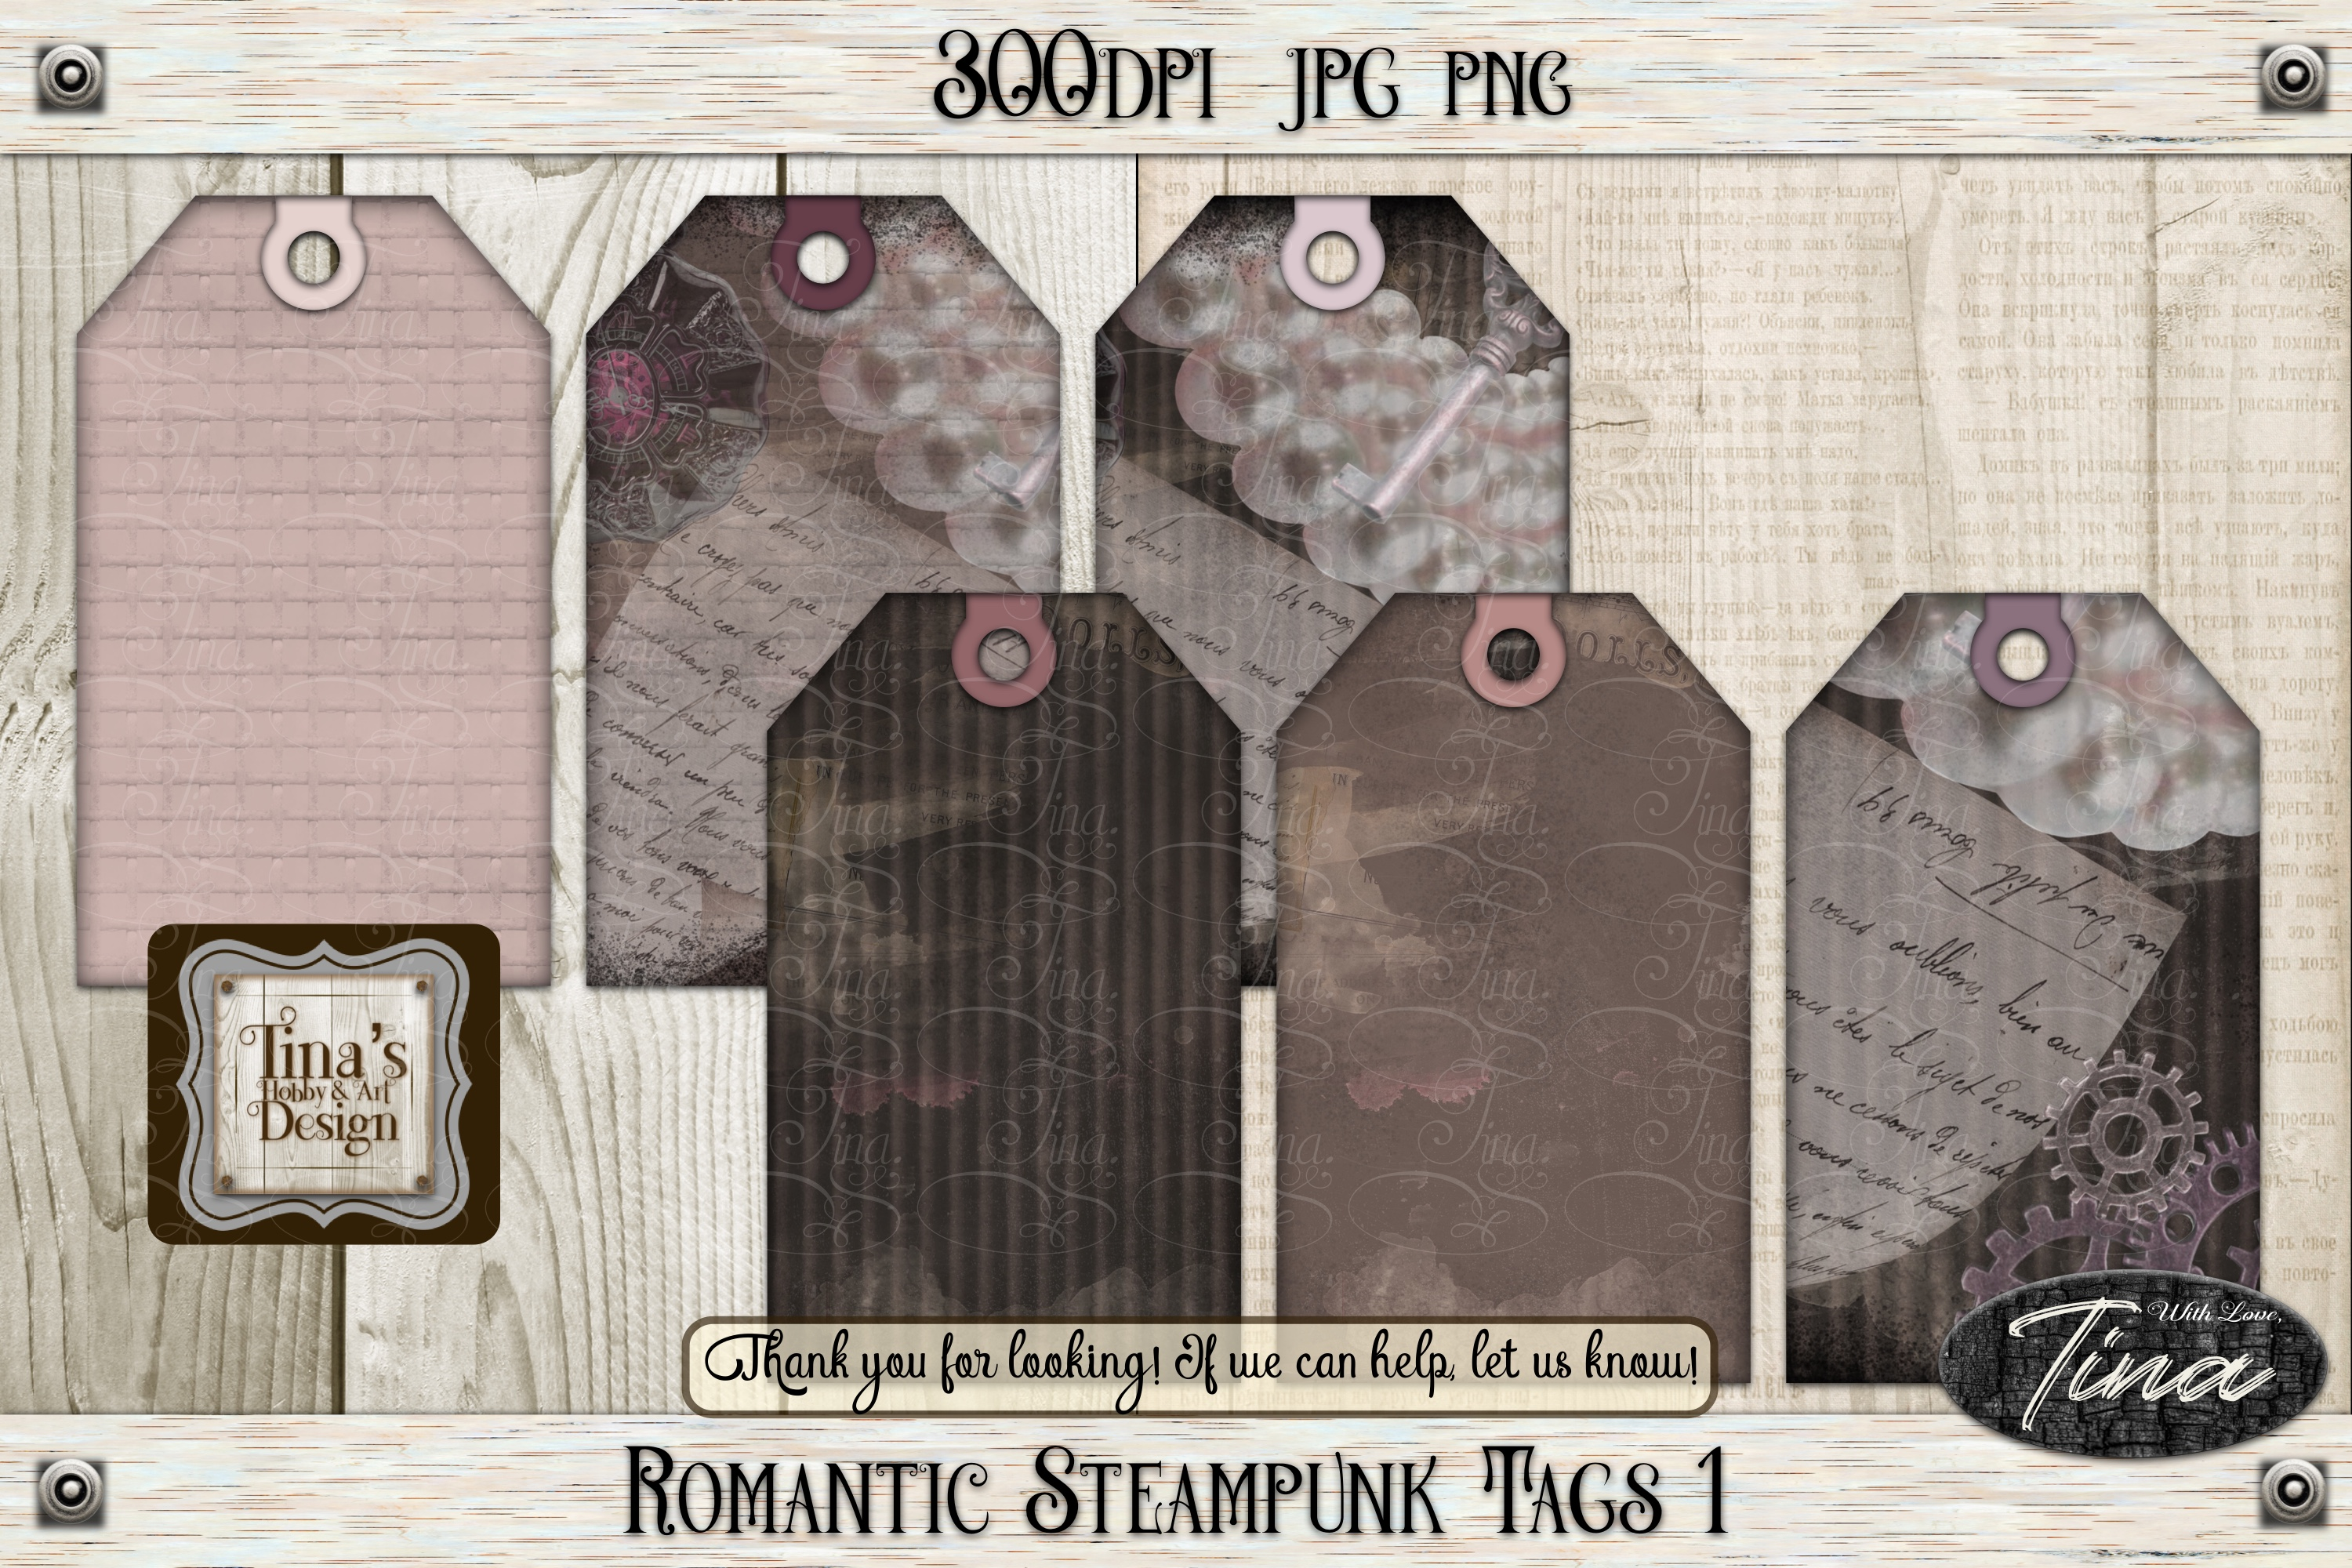 Romantic Steampunk Tags 2 Collage Mauve Grunge 101918RST2 example image 8